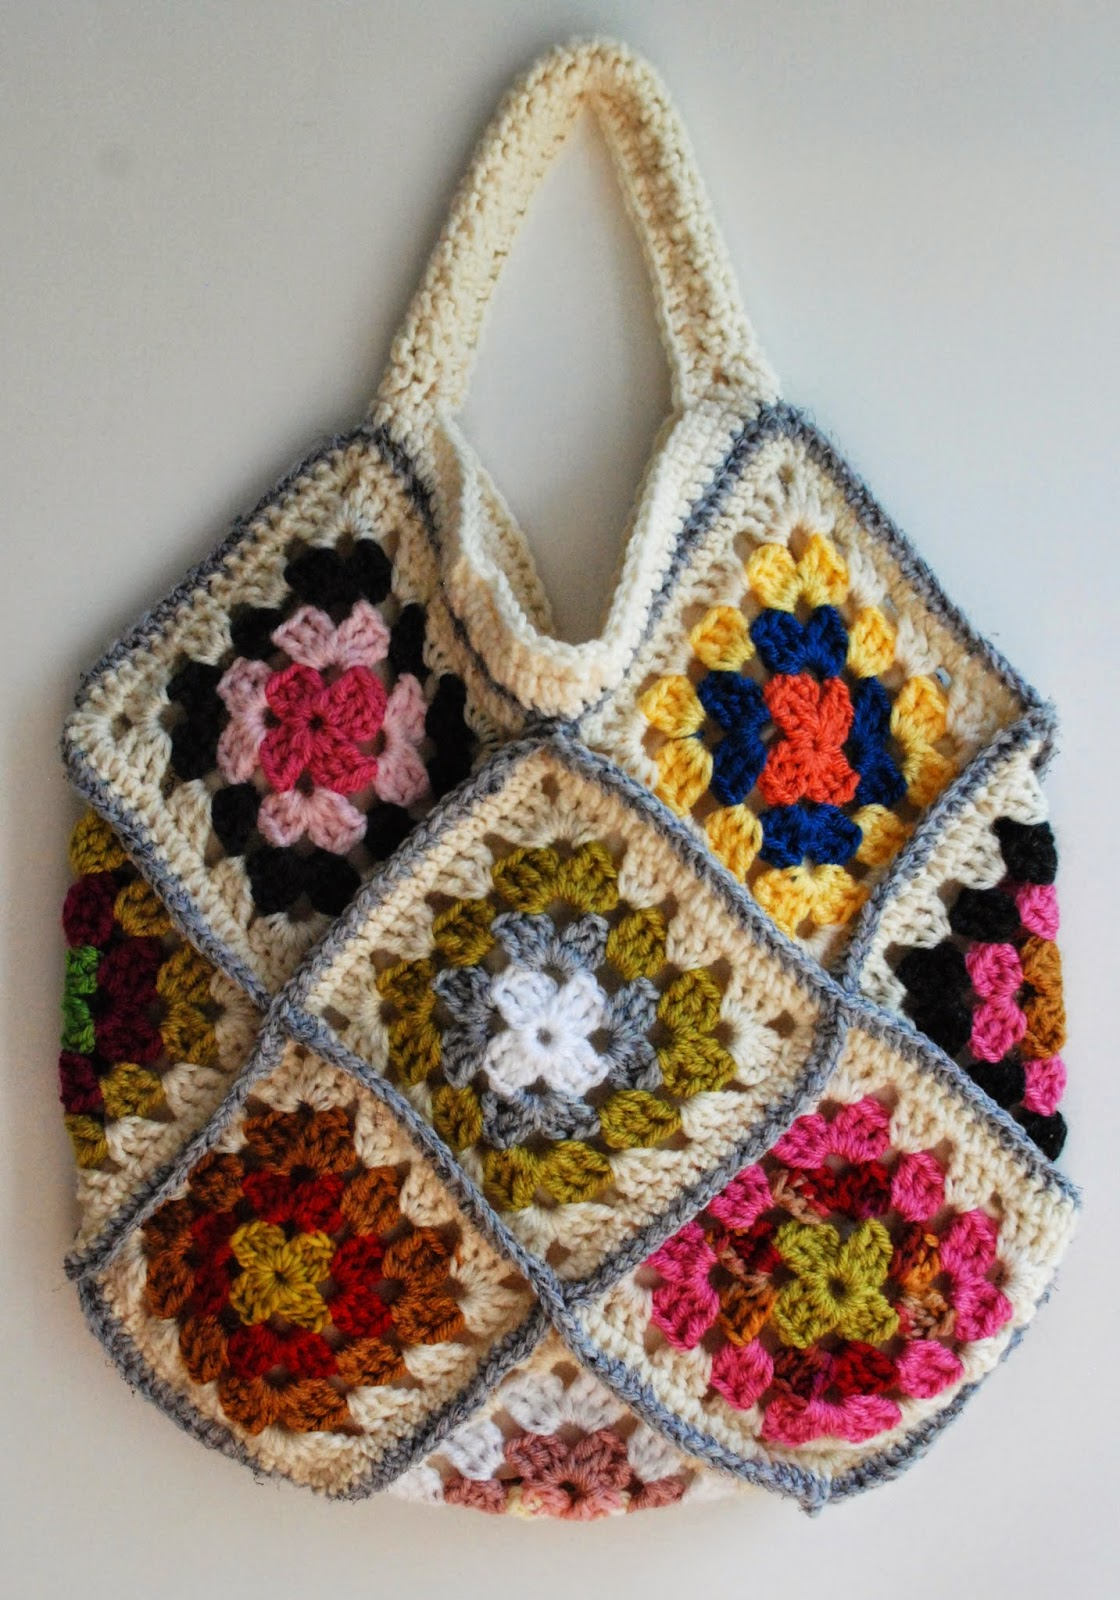 New Crochet Bags : Kristis Twist: New crochet bags added to my Etsy shop